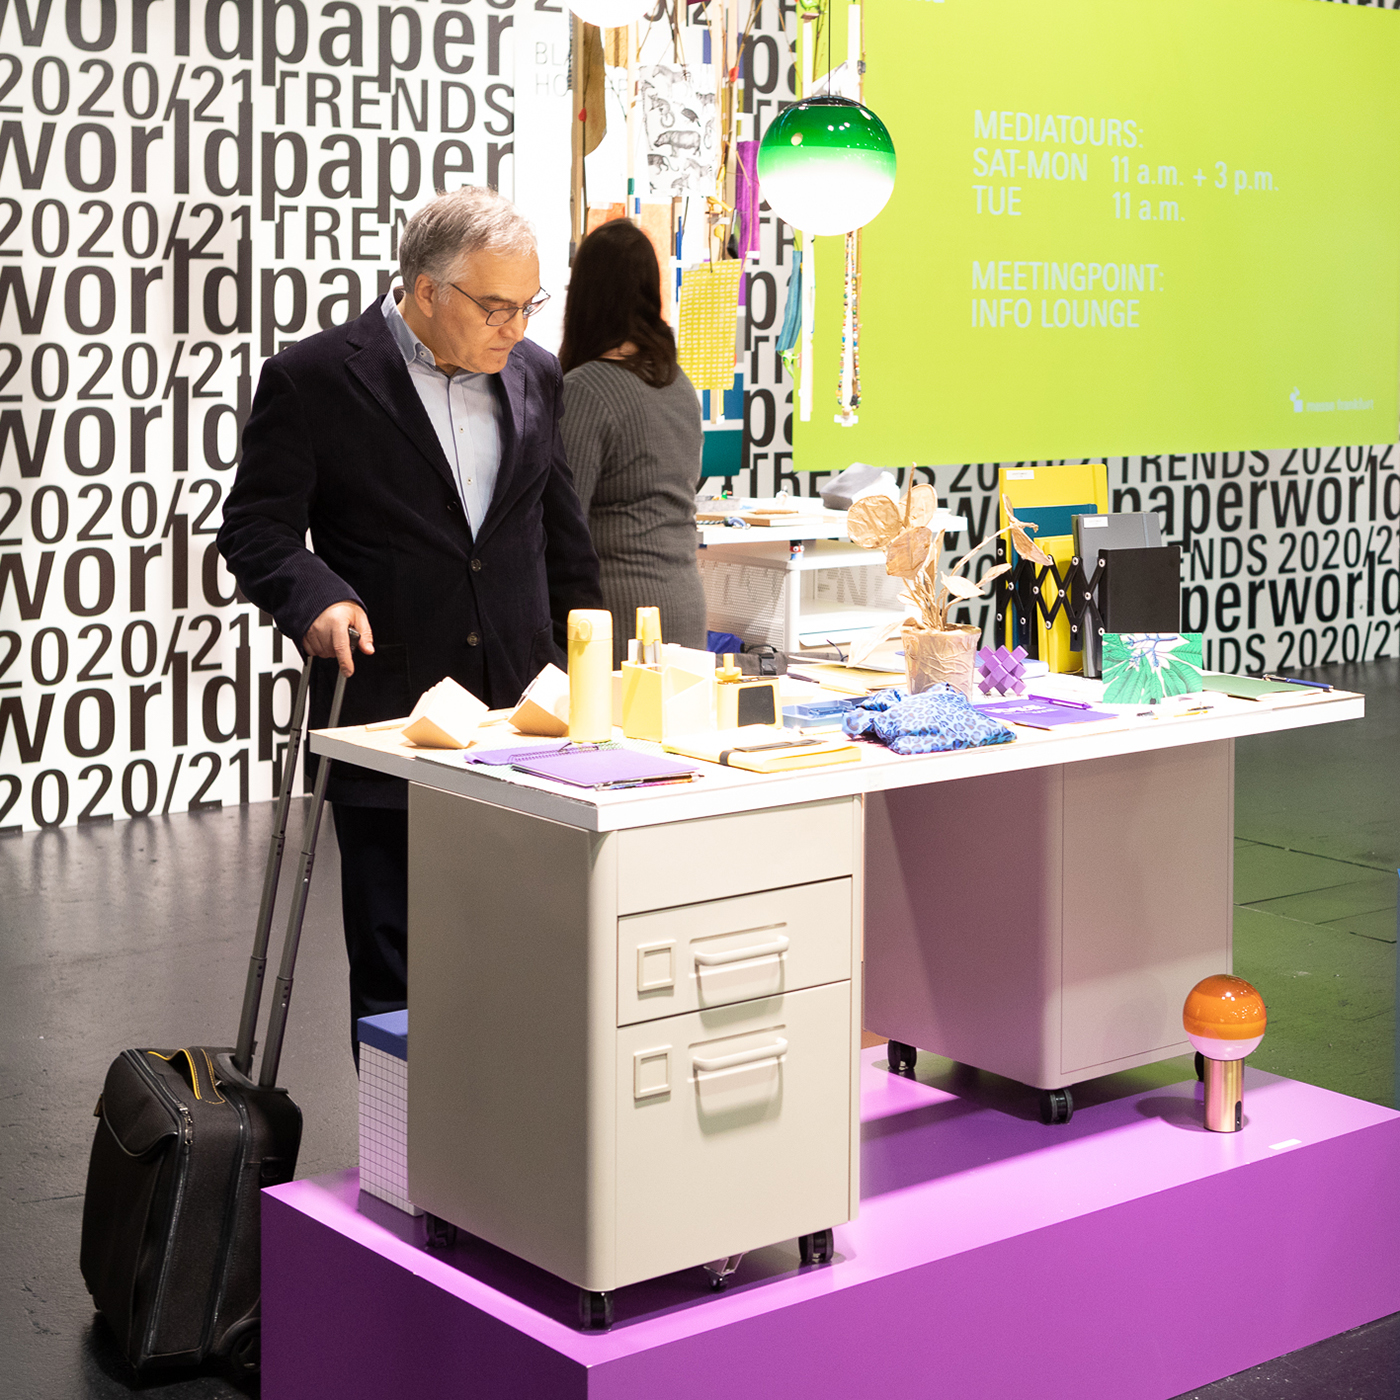 visitor is looking at the latest Paperworld Trends